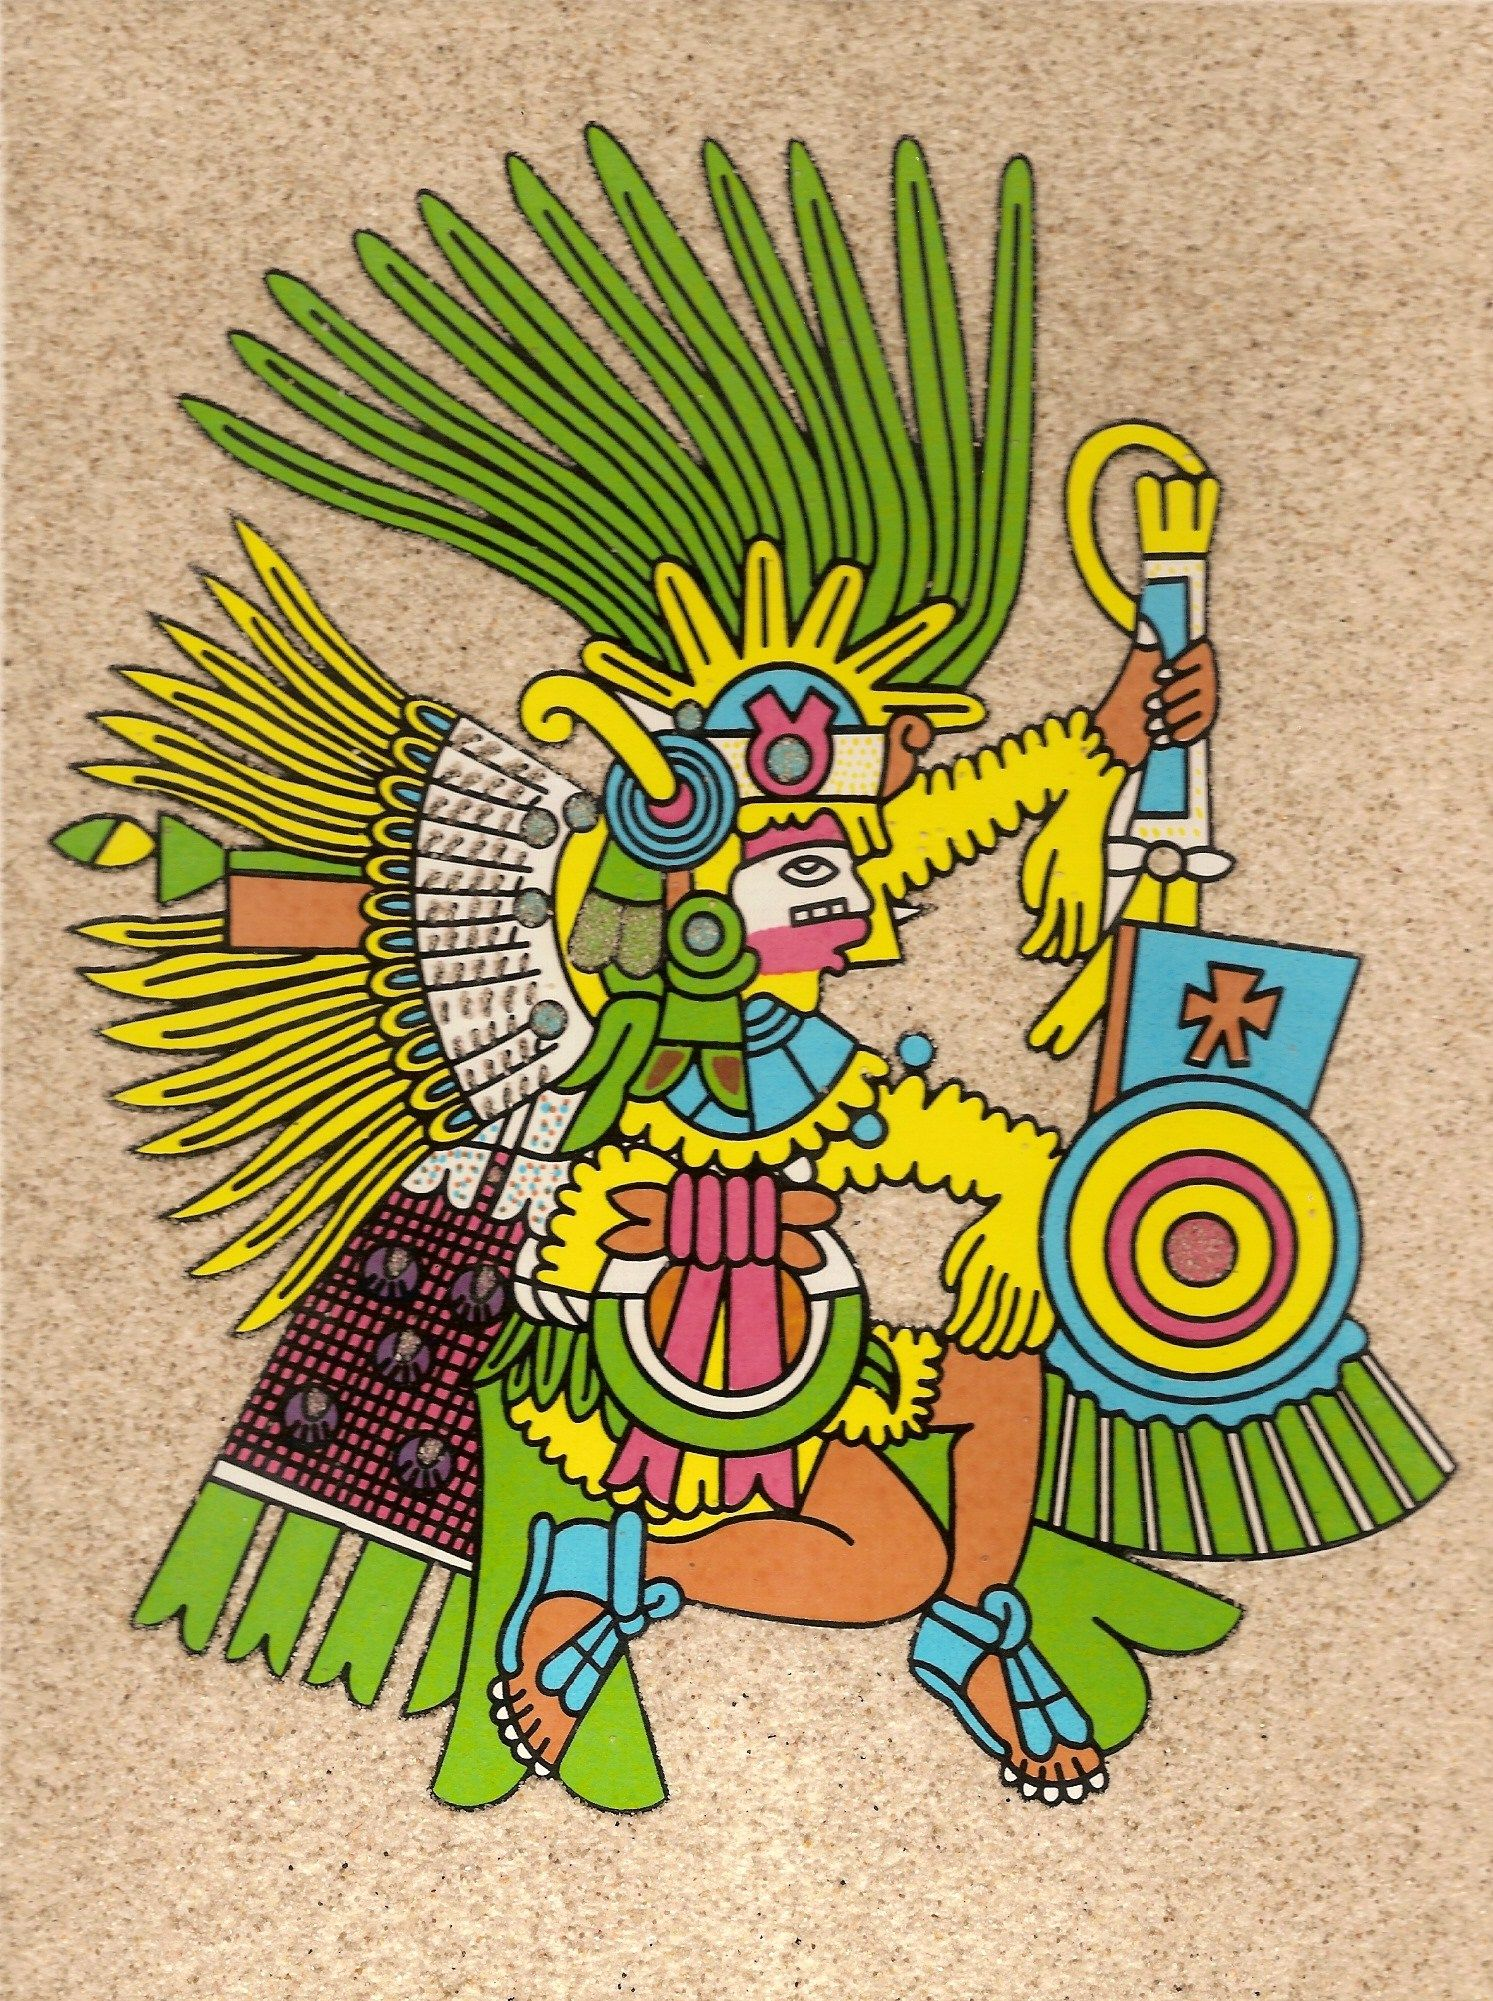 Xipe totec the aztec god of agriculture spring and the seasons xipe totec the aztec god of agriculture spring and the seasons the symbol biocorpaavc Images